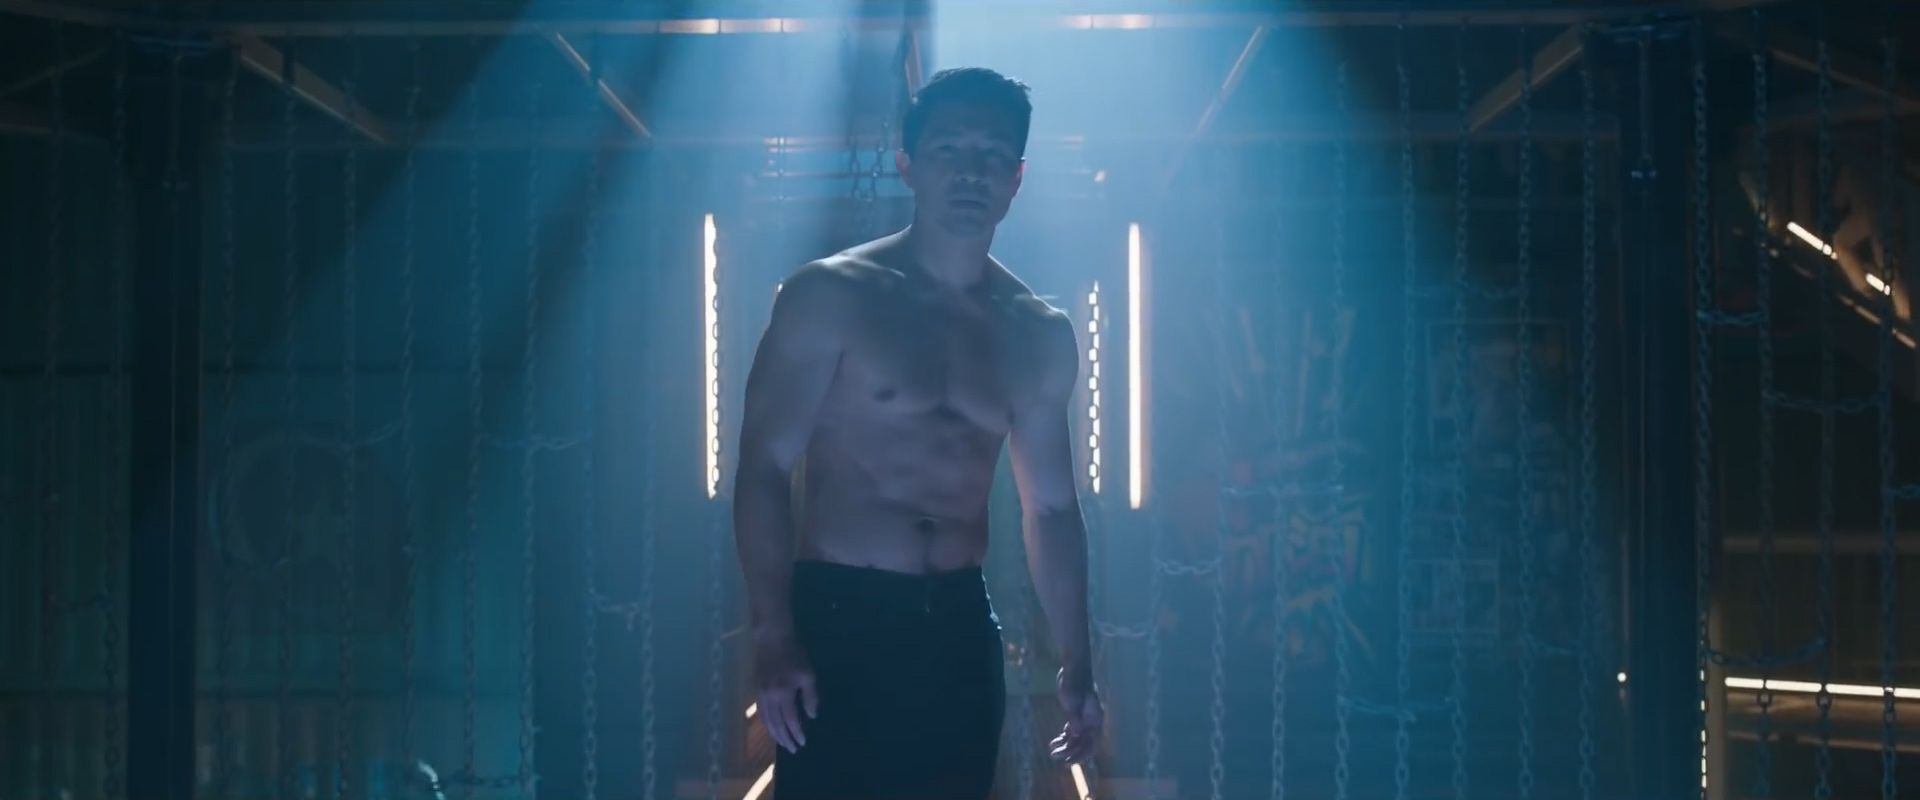 A still from 'Shang-Chi' of shirtless Simu Liu as Shang-Chi emerging from the shadows in the fighting ring